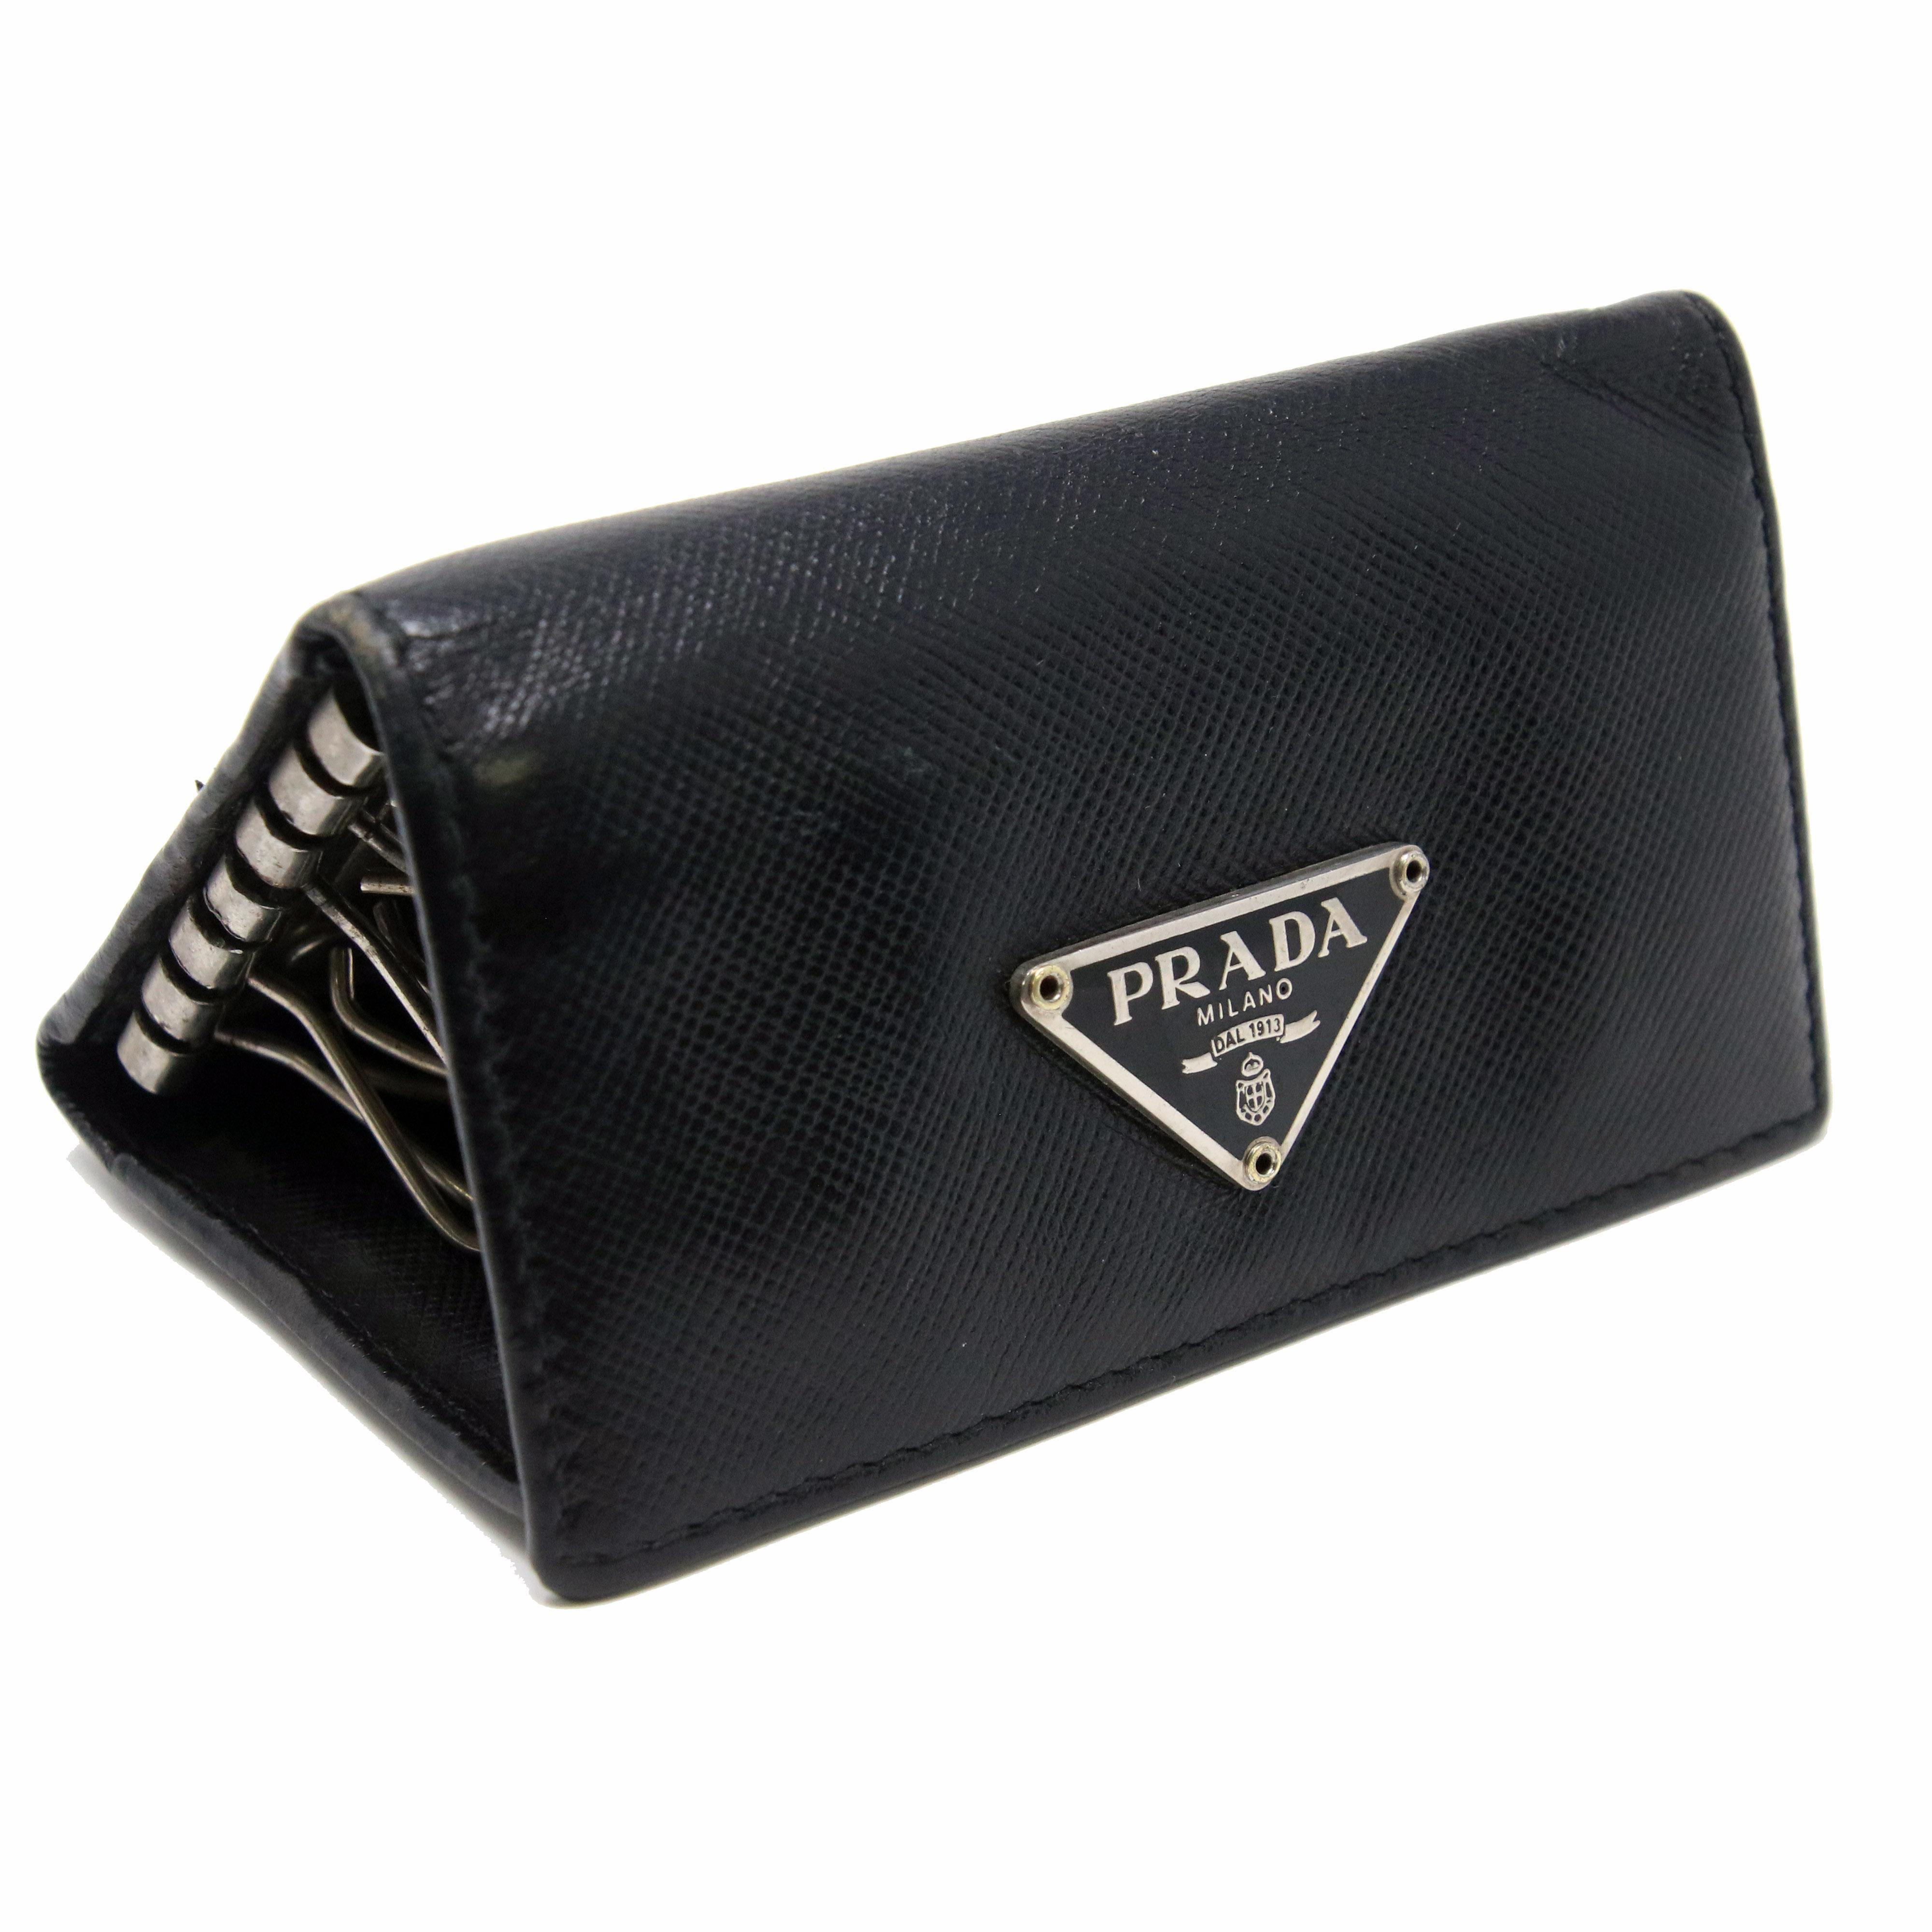 678d40410847 denmark prada saffiano leather keyholder 1m0222 geranio 33b3a e8961;  wholesale prada prada signature saffiano keychain 5 key holder travel case  03de9 9fc23